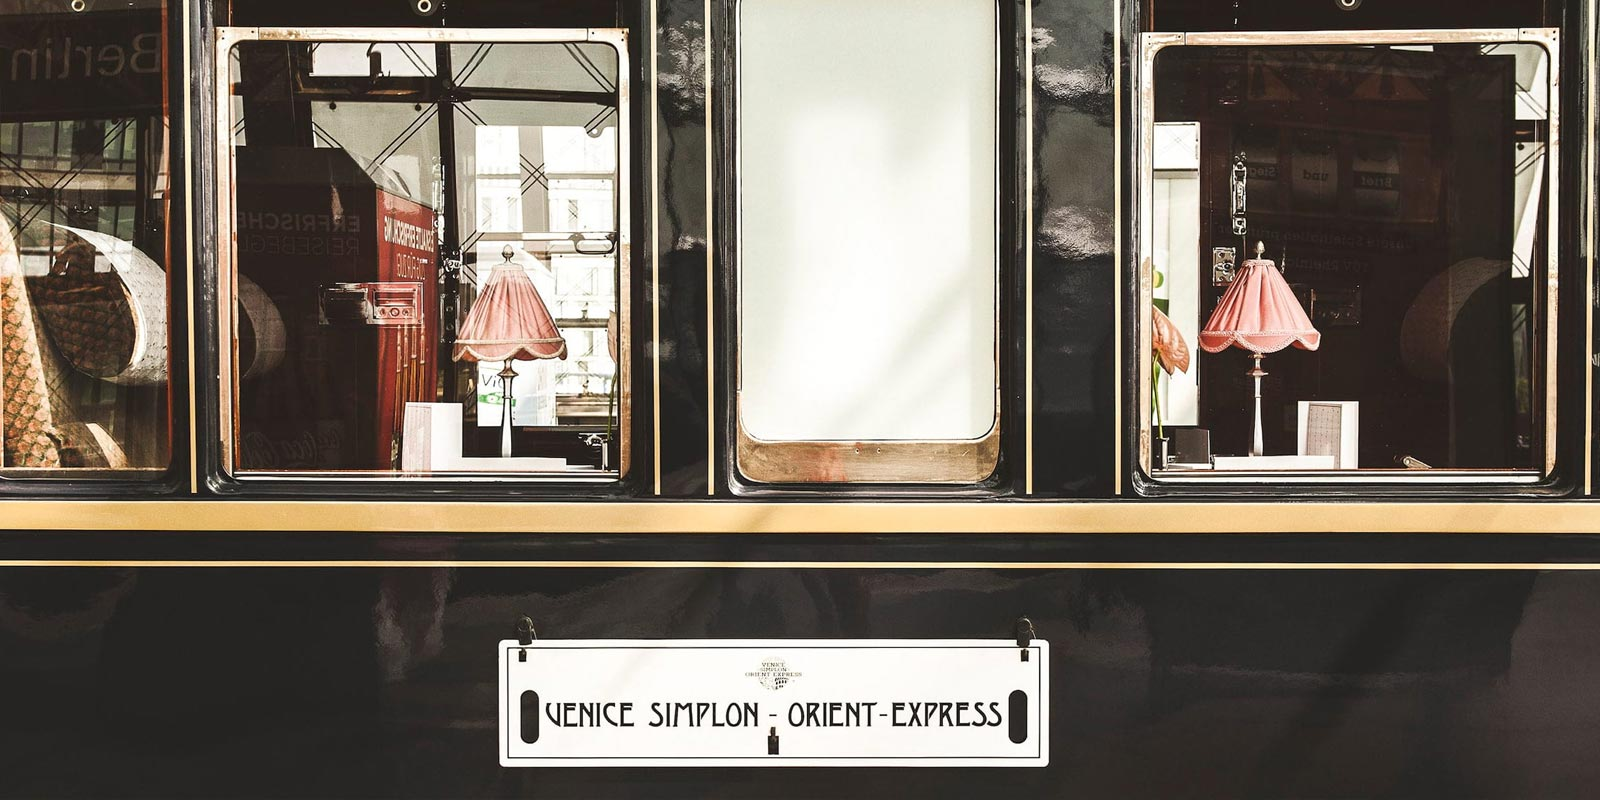 Venice Simplon Orient Express Paris to Verona